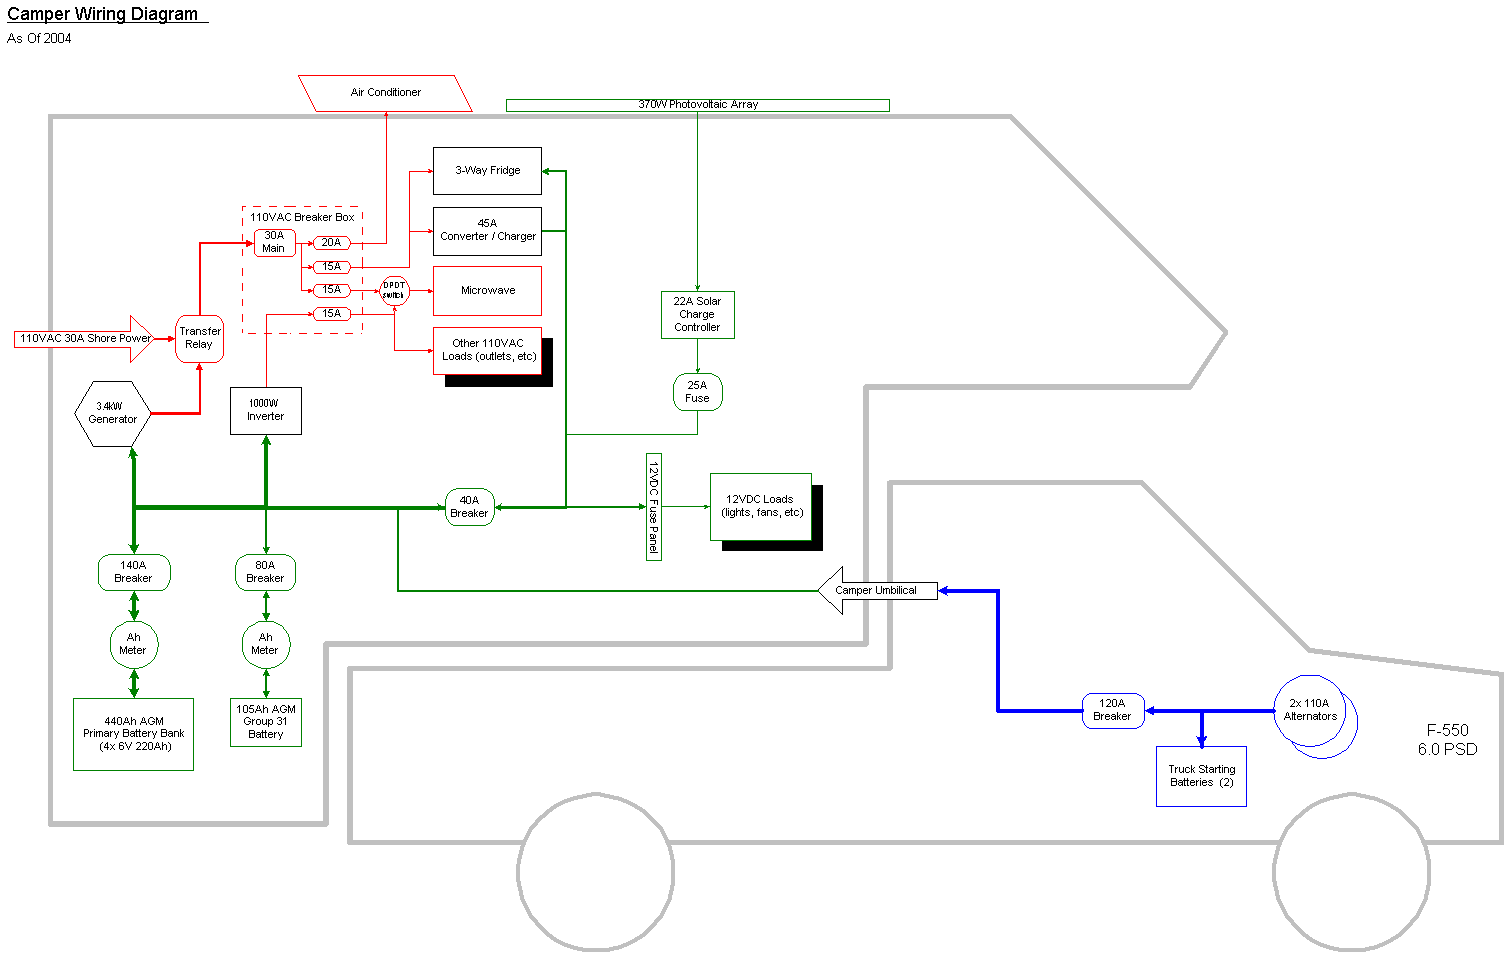 2004Diagram rv wiring diagrams 6 pole round wiring diagram \u2022 wiring diagrams truck camper wiring harness at metegol.co